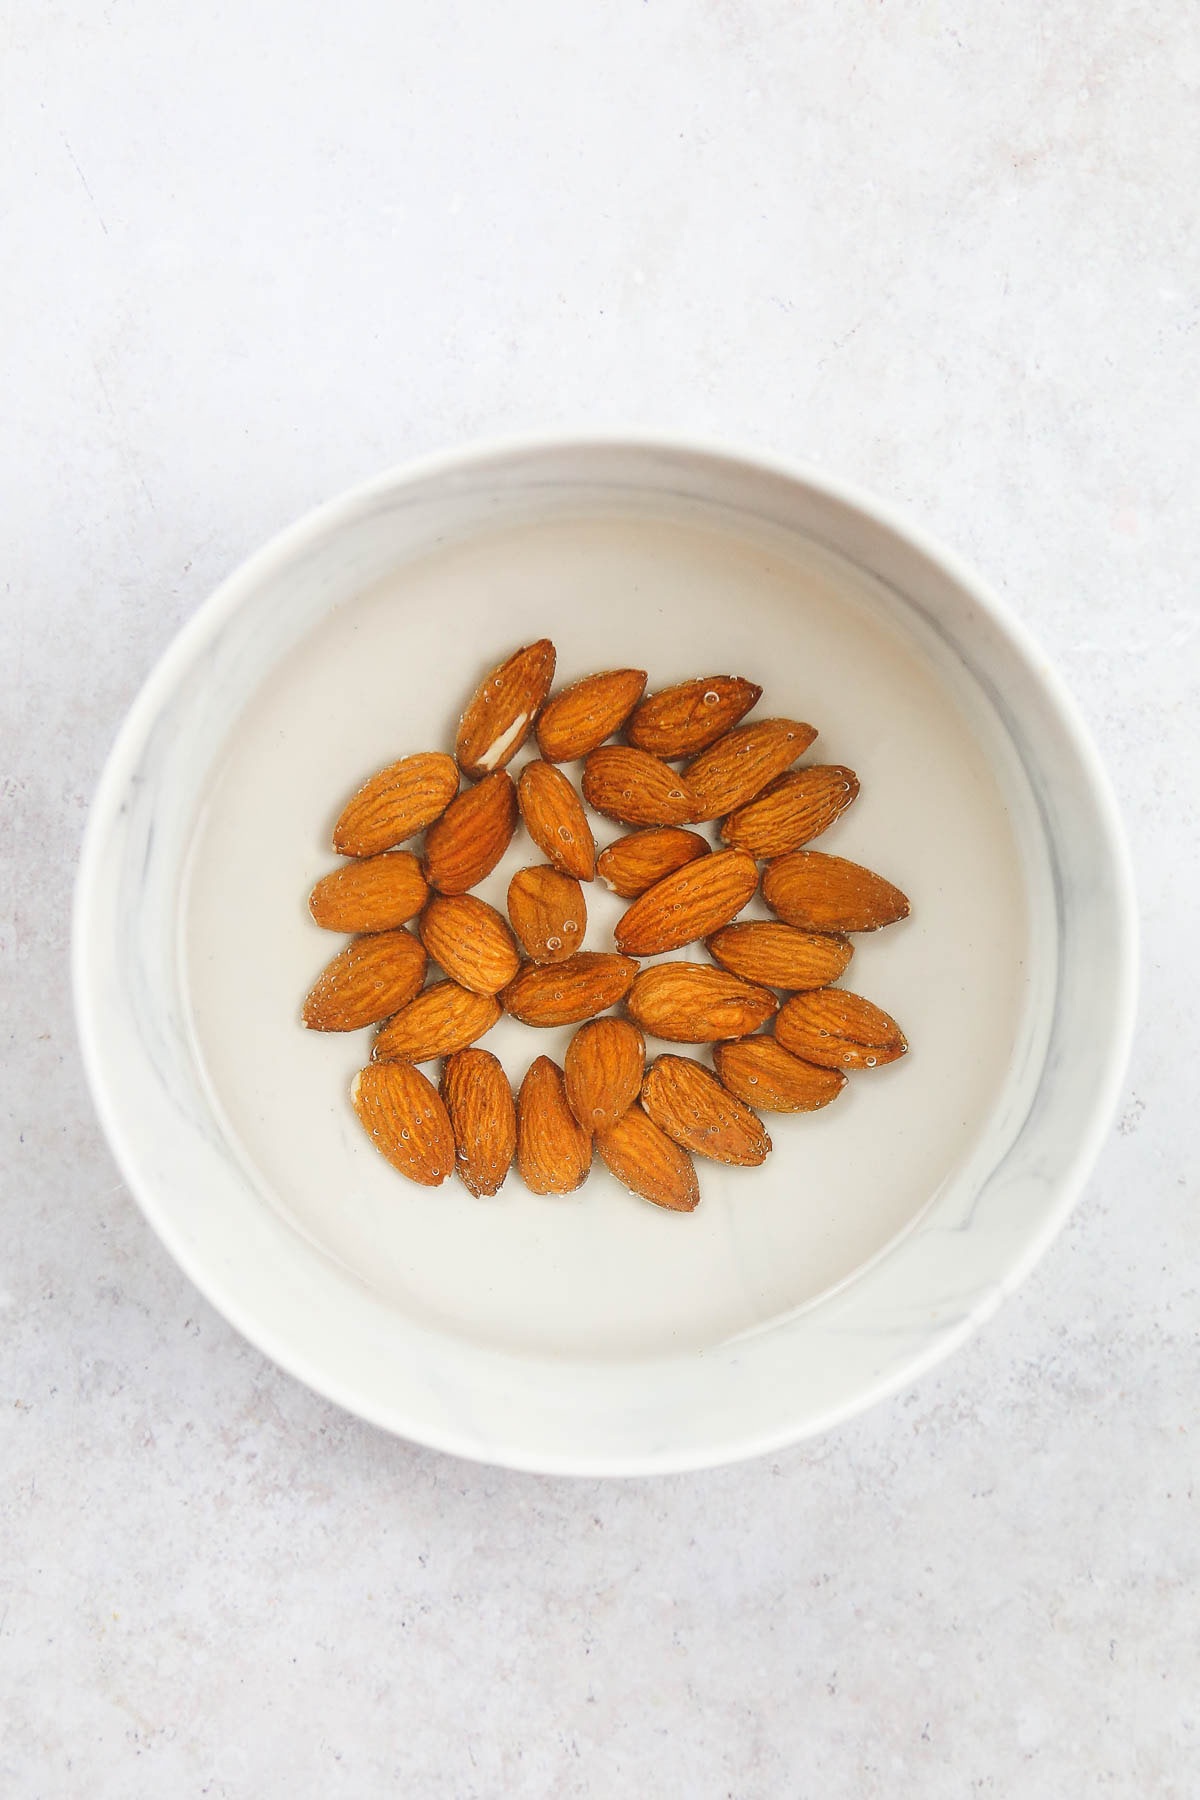 Almonds soaked in water in a white bowl.